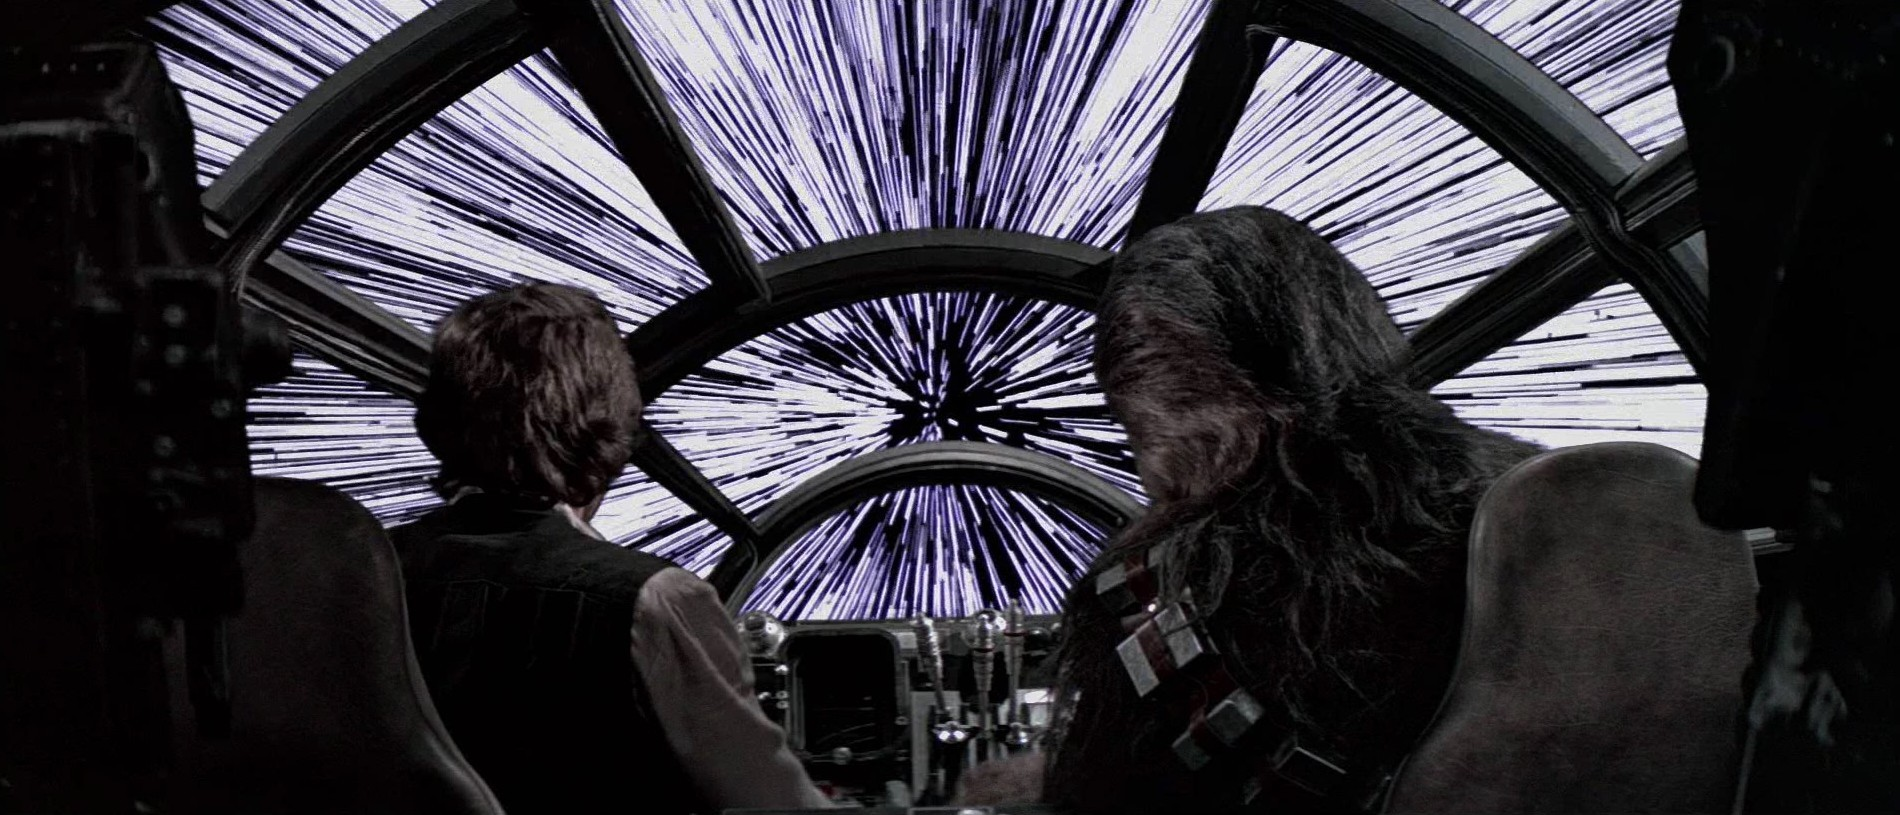 Millenium Falcon Cockpit Wallpaper The wallpaper today features a ...